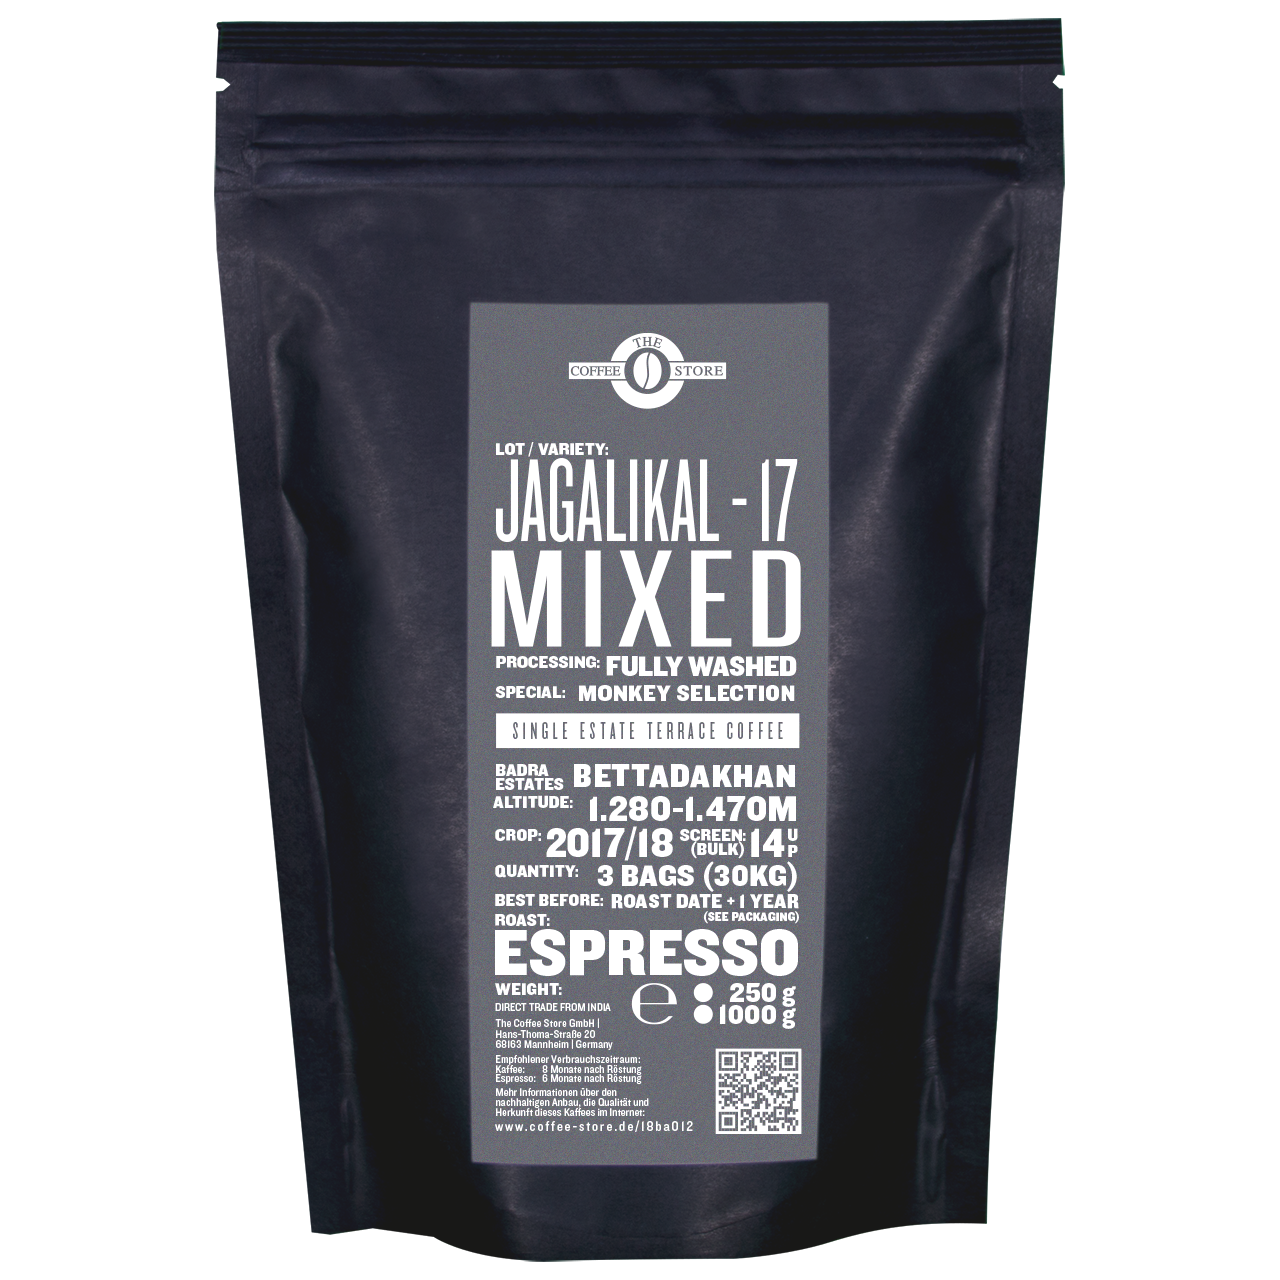 Jagalikal-17, Mixed Monkey Selection, Espressoröstung